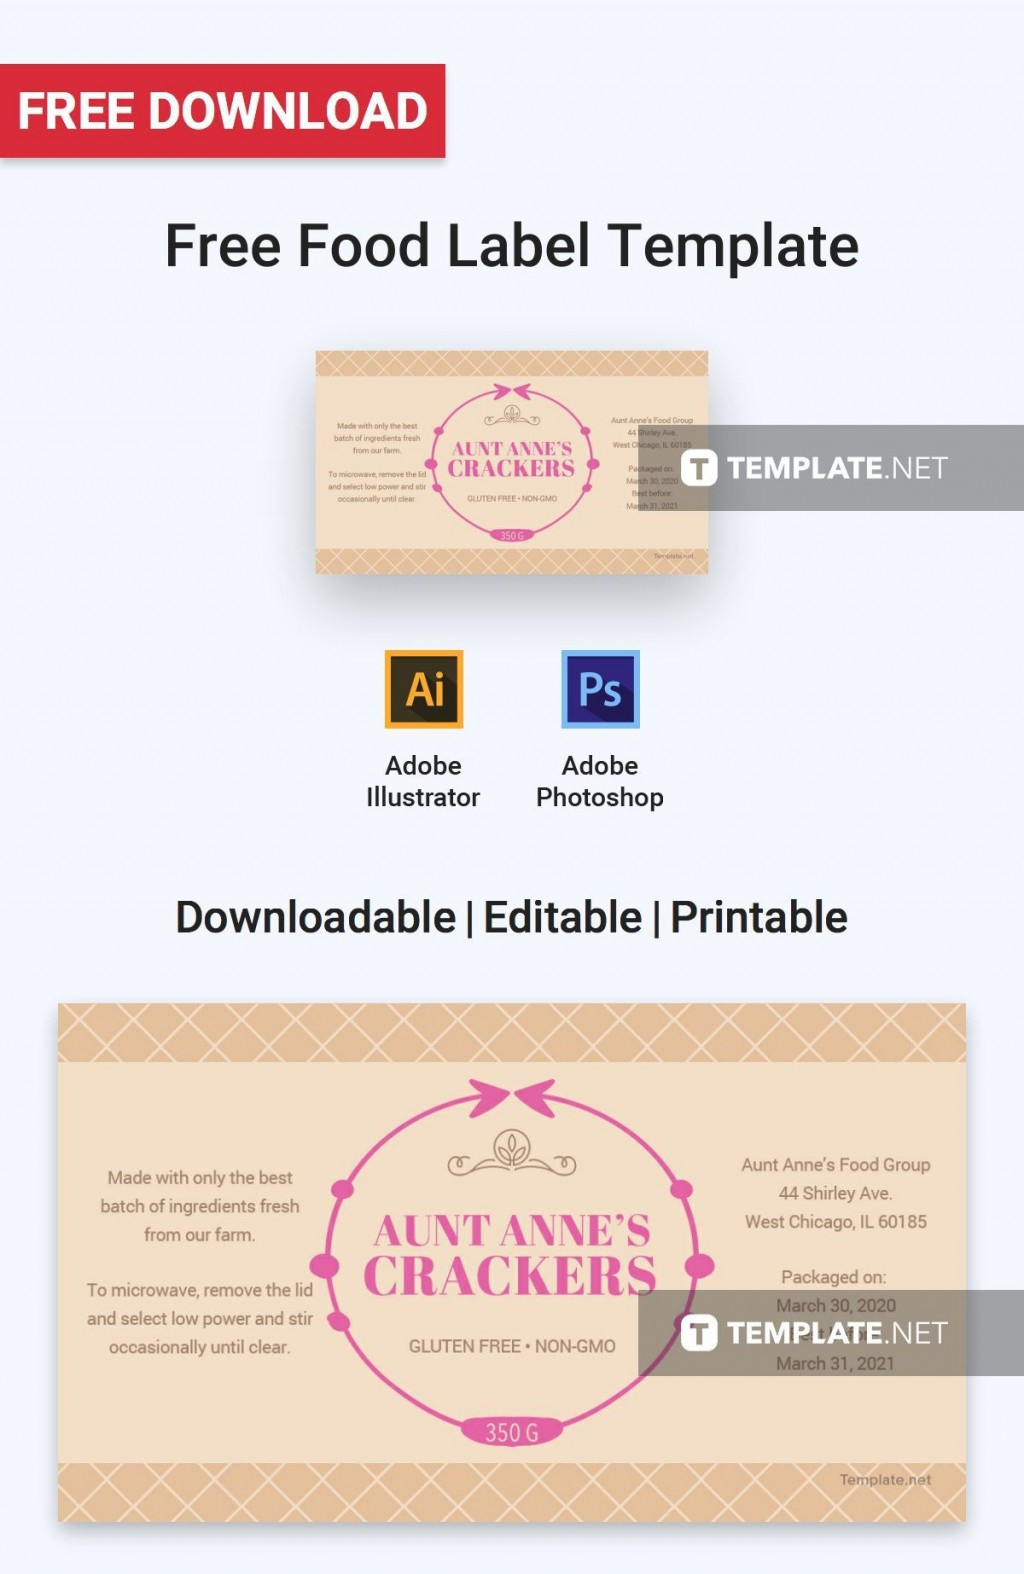 006 Phenomenal Microsoft Word Label Template Free Download High Definition Large